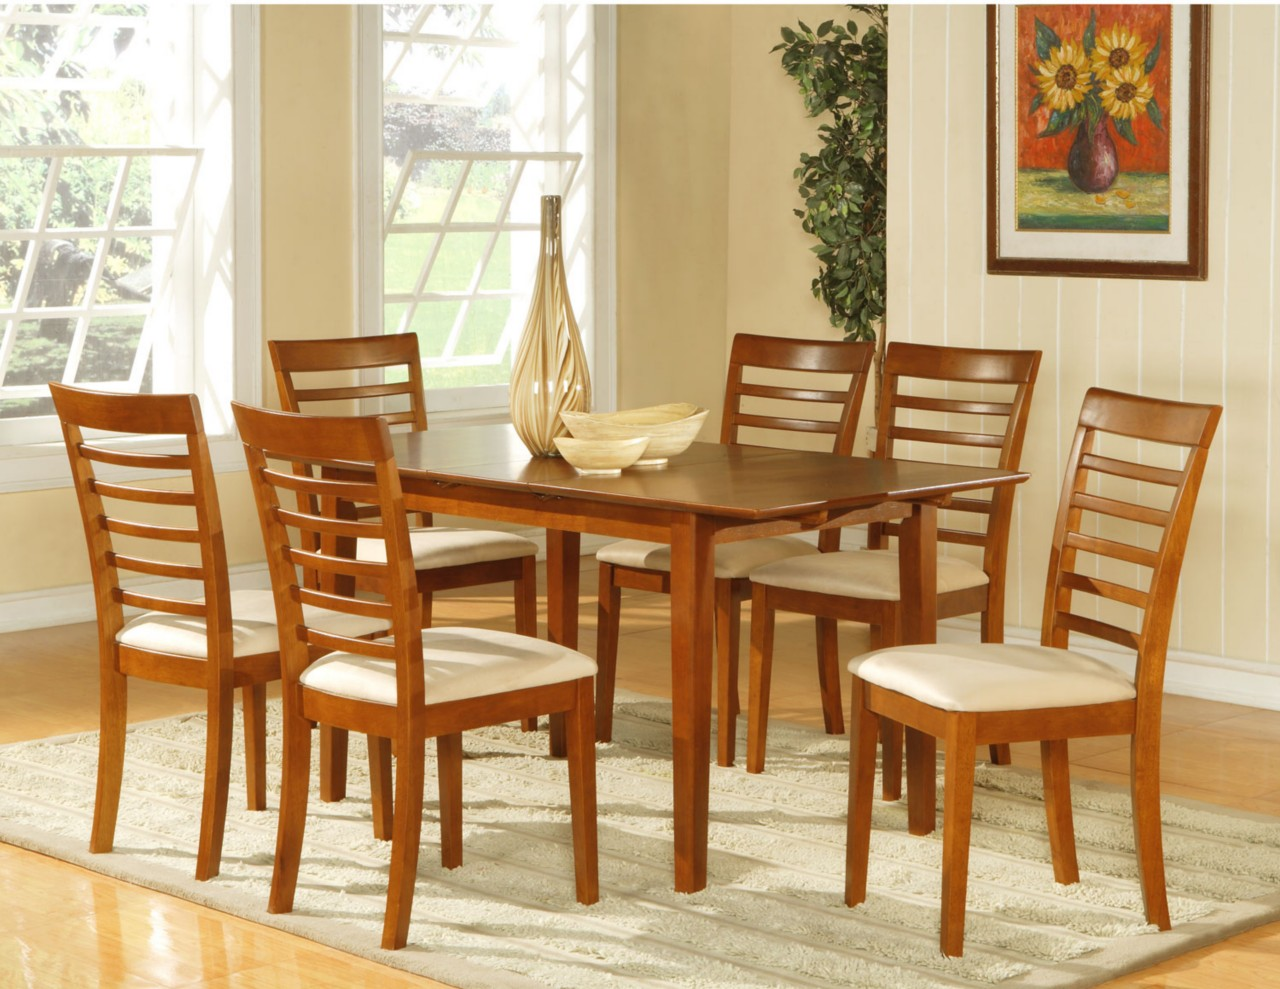 7pc dining room dinette set table and 6 chairs brown ebay for Kitchenette sets furniture